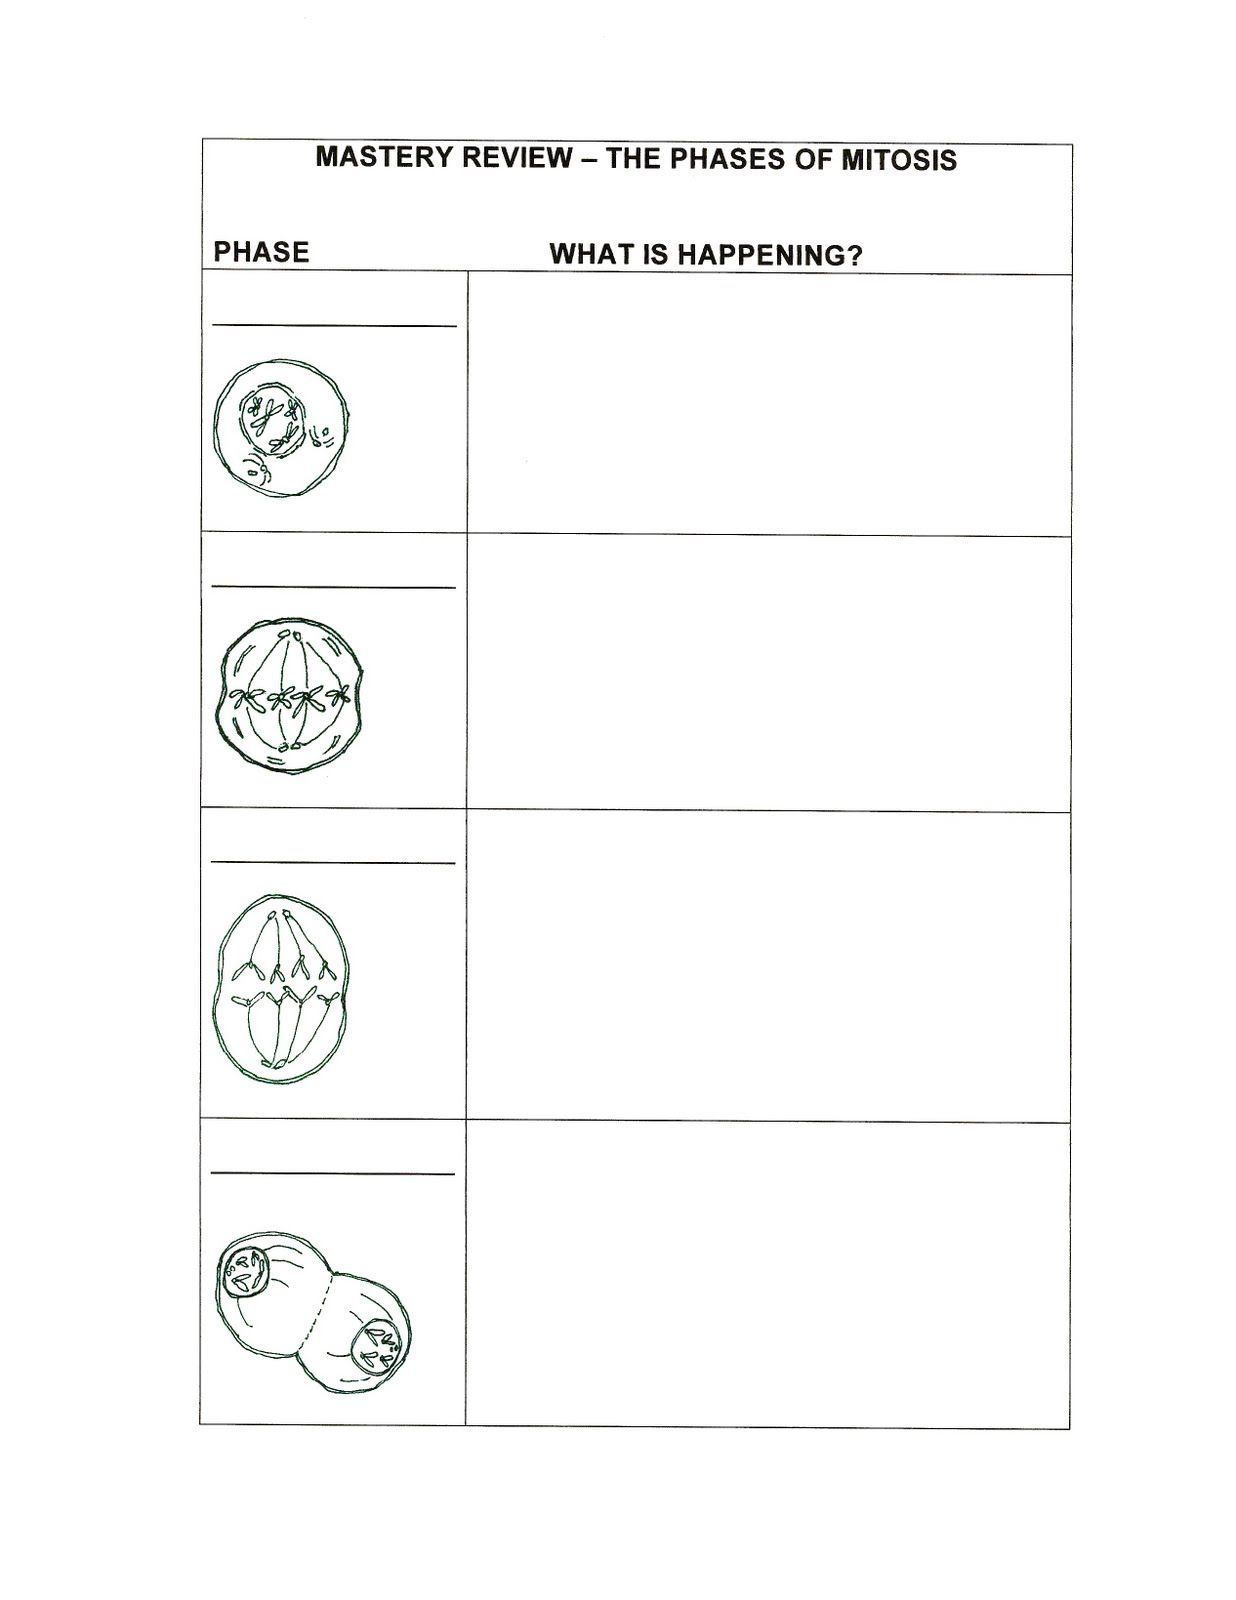 worksheet Phases Of Mitosis Worksheet foldables for science tutor phases of mitosis mastery review graphic organizer